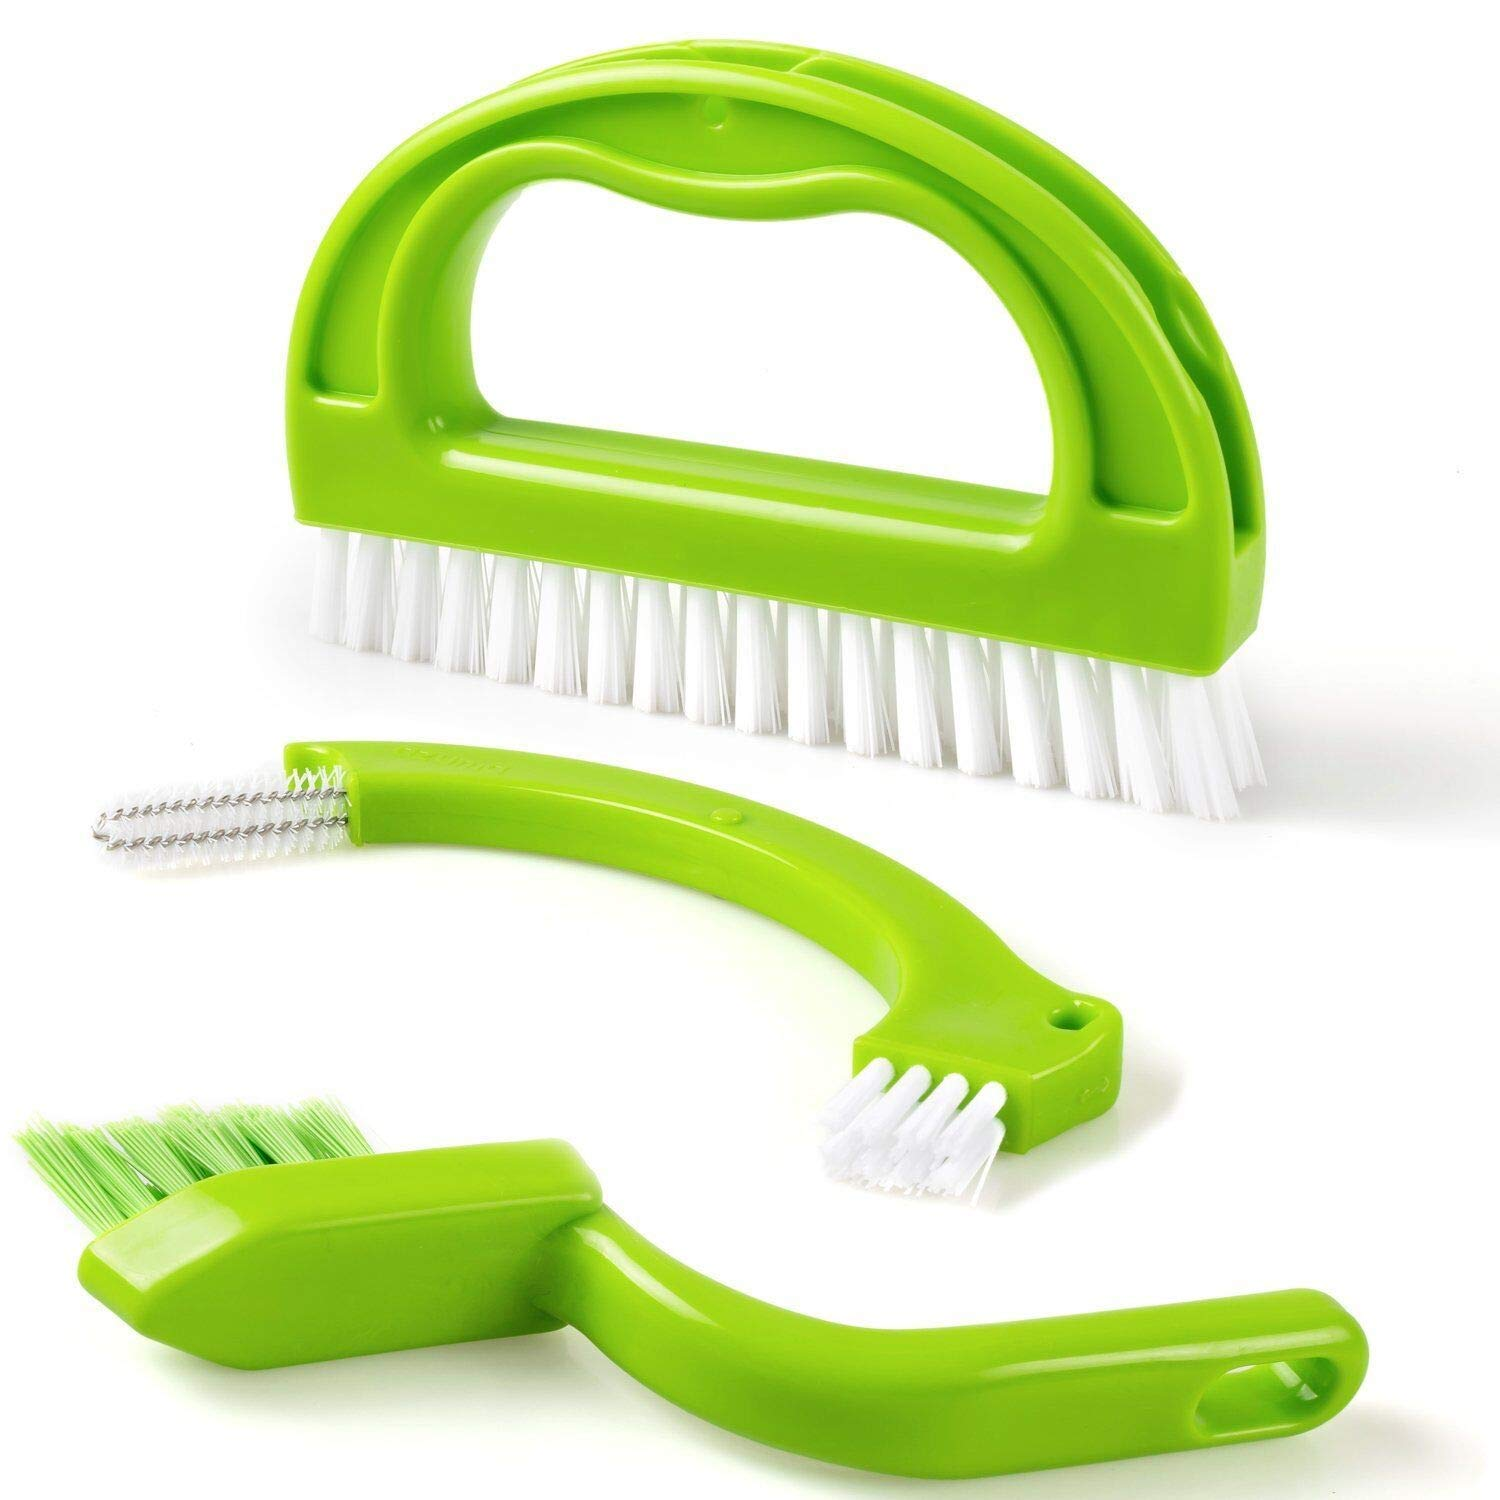 Tile Brushes Grout, Tinabless 3 in 1 Joint Brush Deep Cleaning for Bathroom & Kitchen, Grout Cleaning Brush (Green)